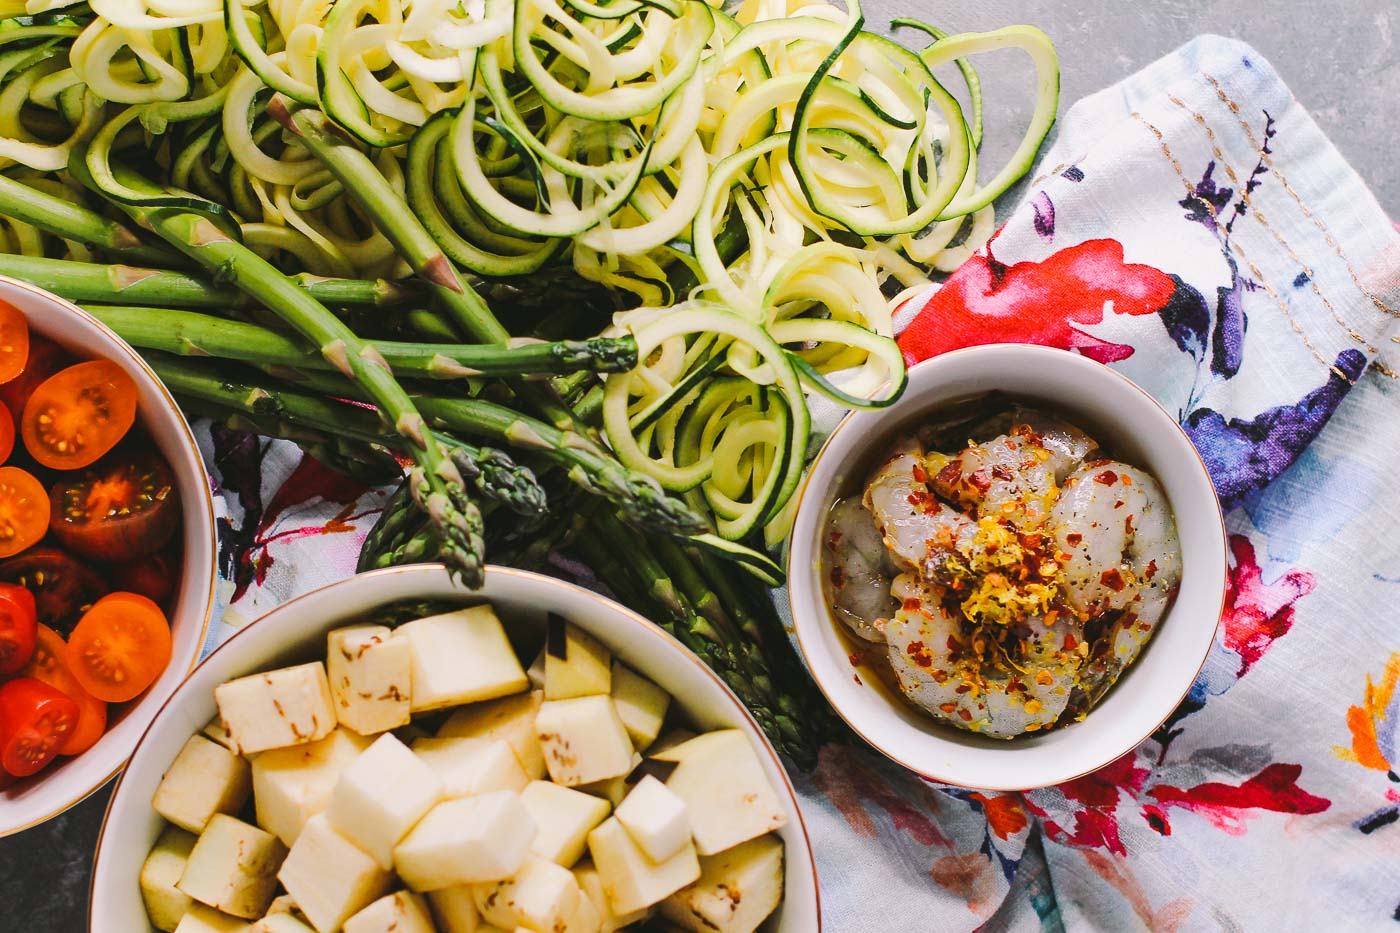 zoodles tossed into a garlic-infused olive oil with lemon & loads of summer vegetables. topped off with shrimp, grated cheese, and a good sprinkle of crushed red chili, these aglio olio zoodles are going to be your new favorite this summer! | gluten free, healthy recipe, summer food, summer party, vegetables, farmers market recipe, easy recipe |